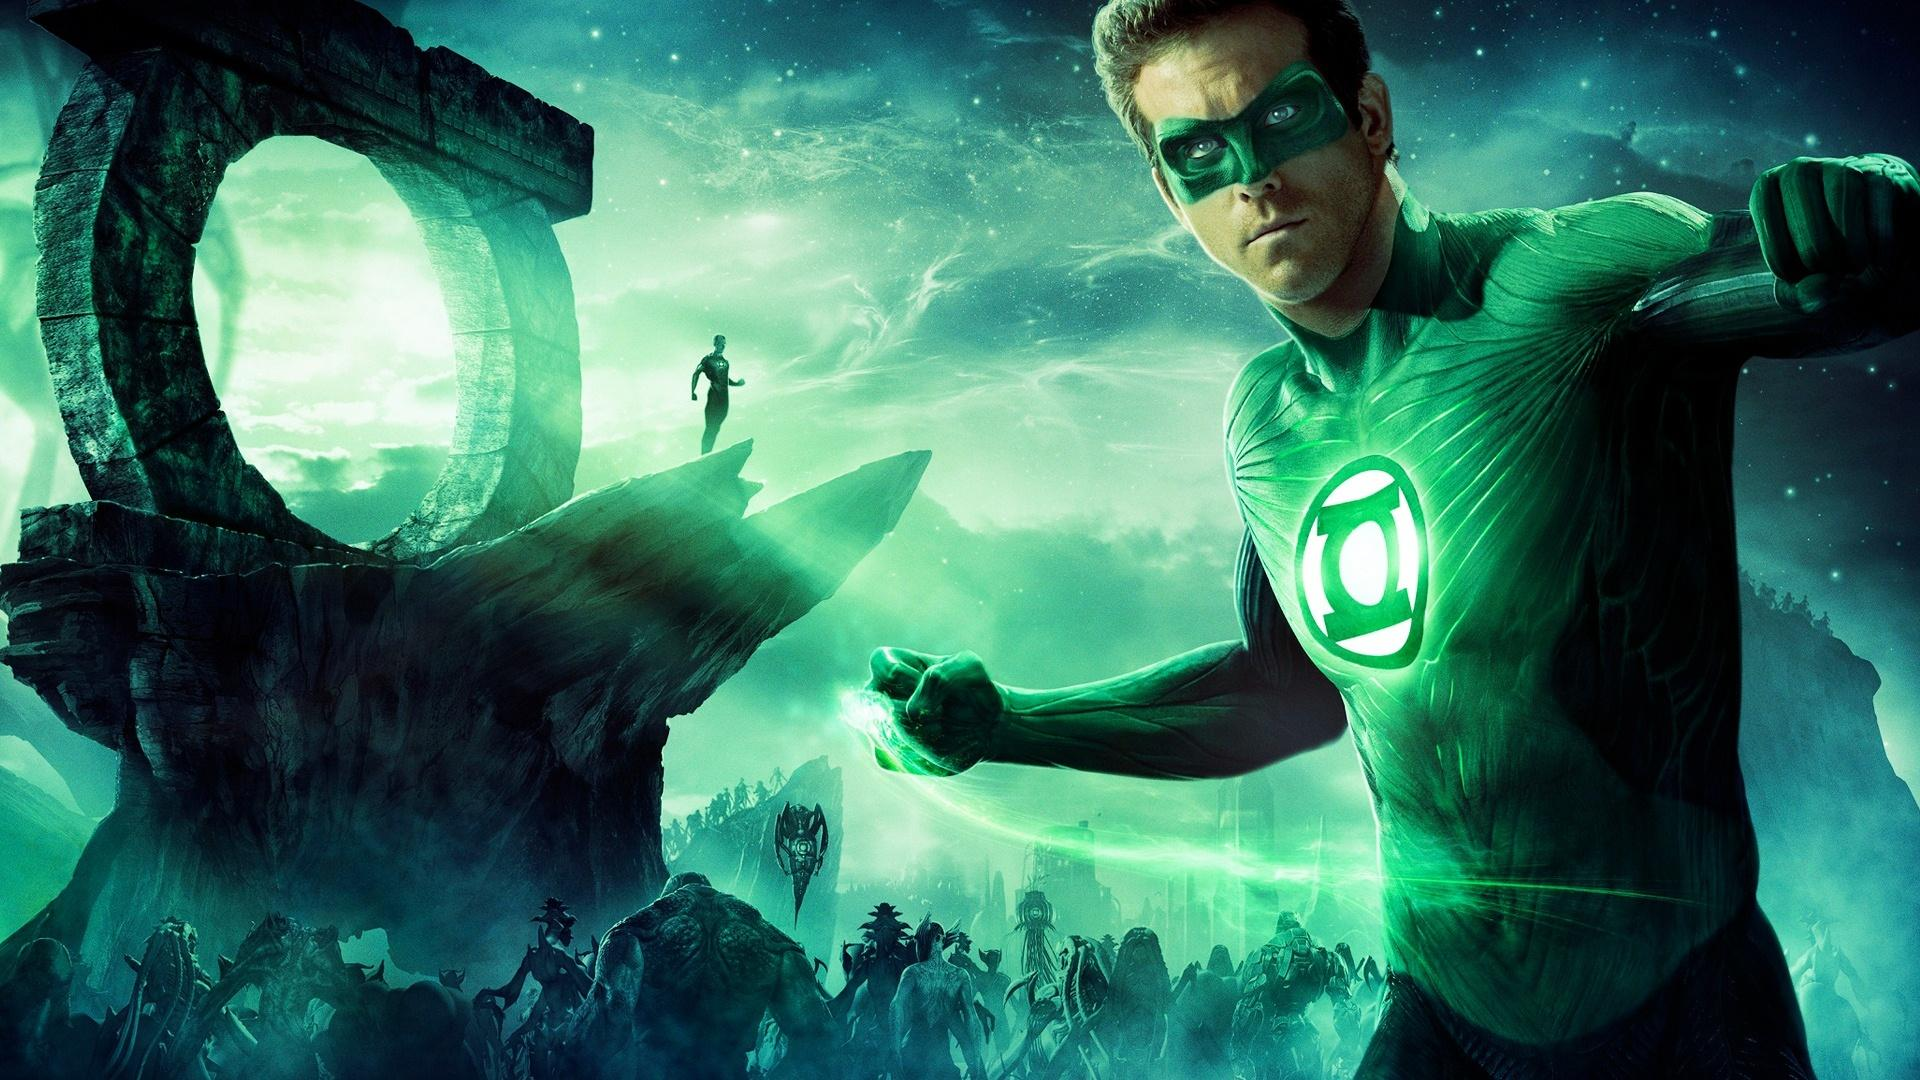 green-lantern.jpg (JPEG Image, 1920 × 1080 pixels) - Scaled (88%)